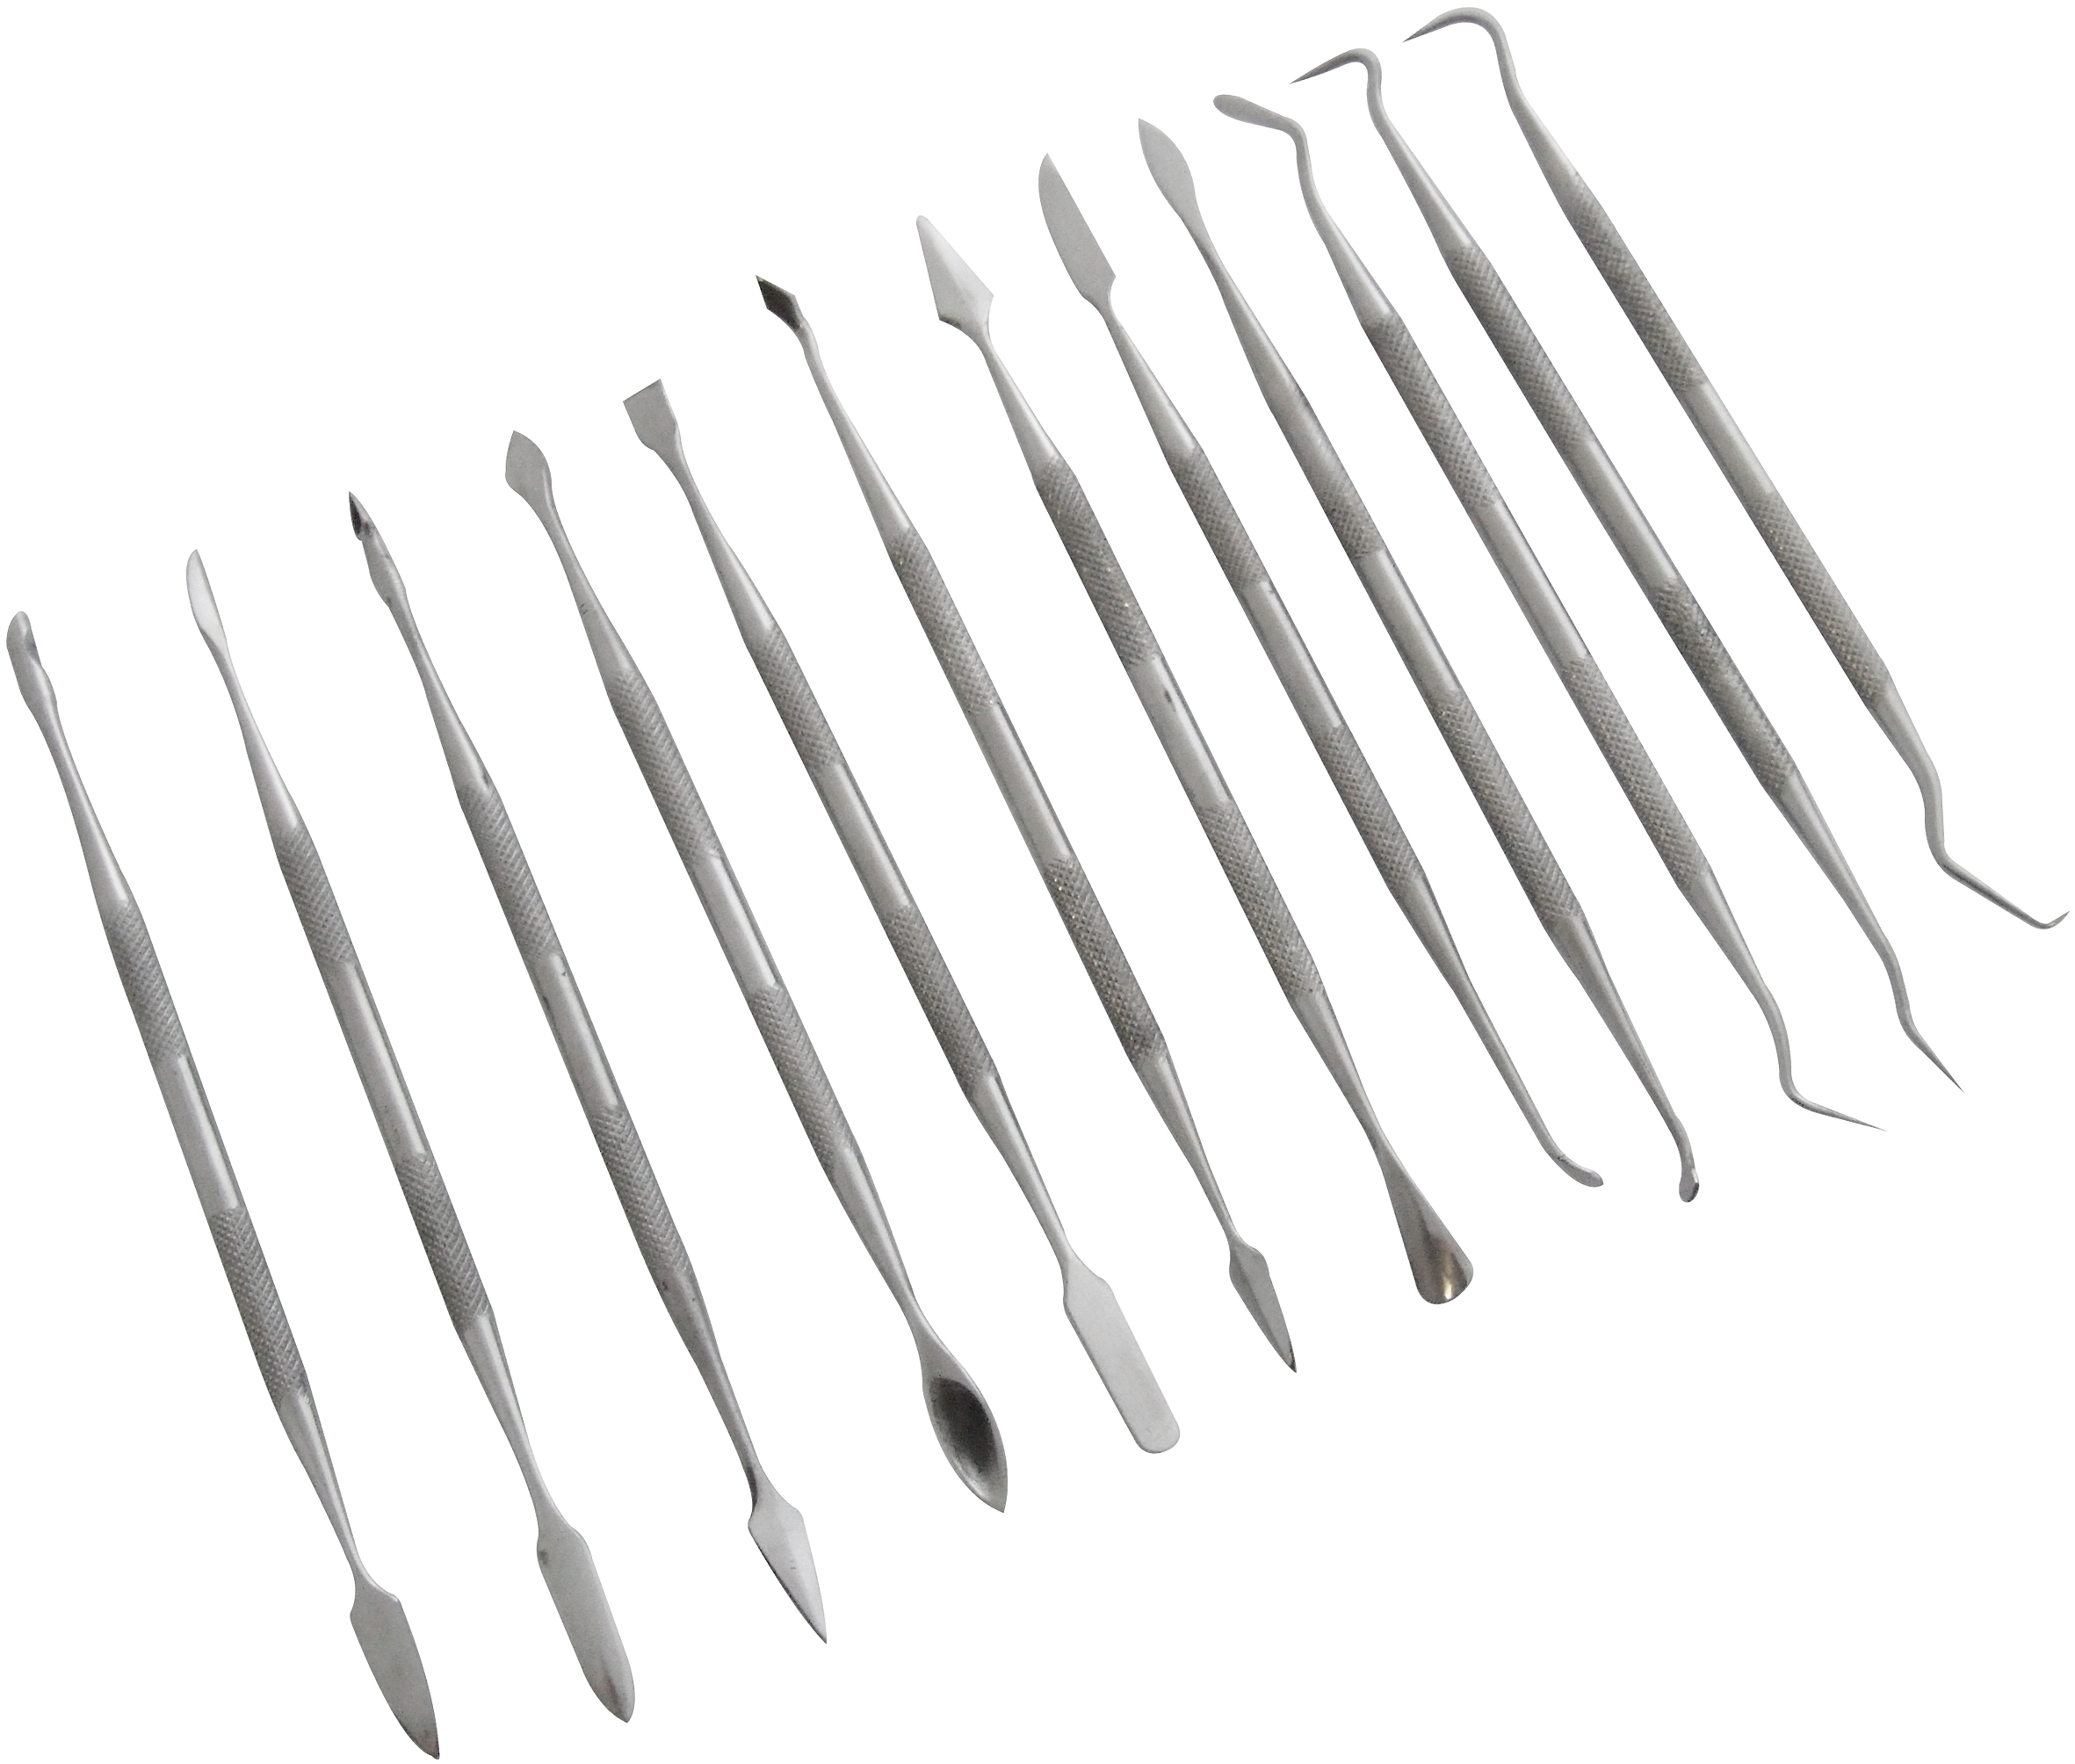 Wax Carver Set 12pc Stainless Steel Clay Tool Kit